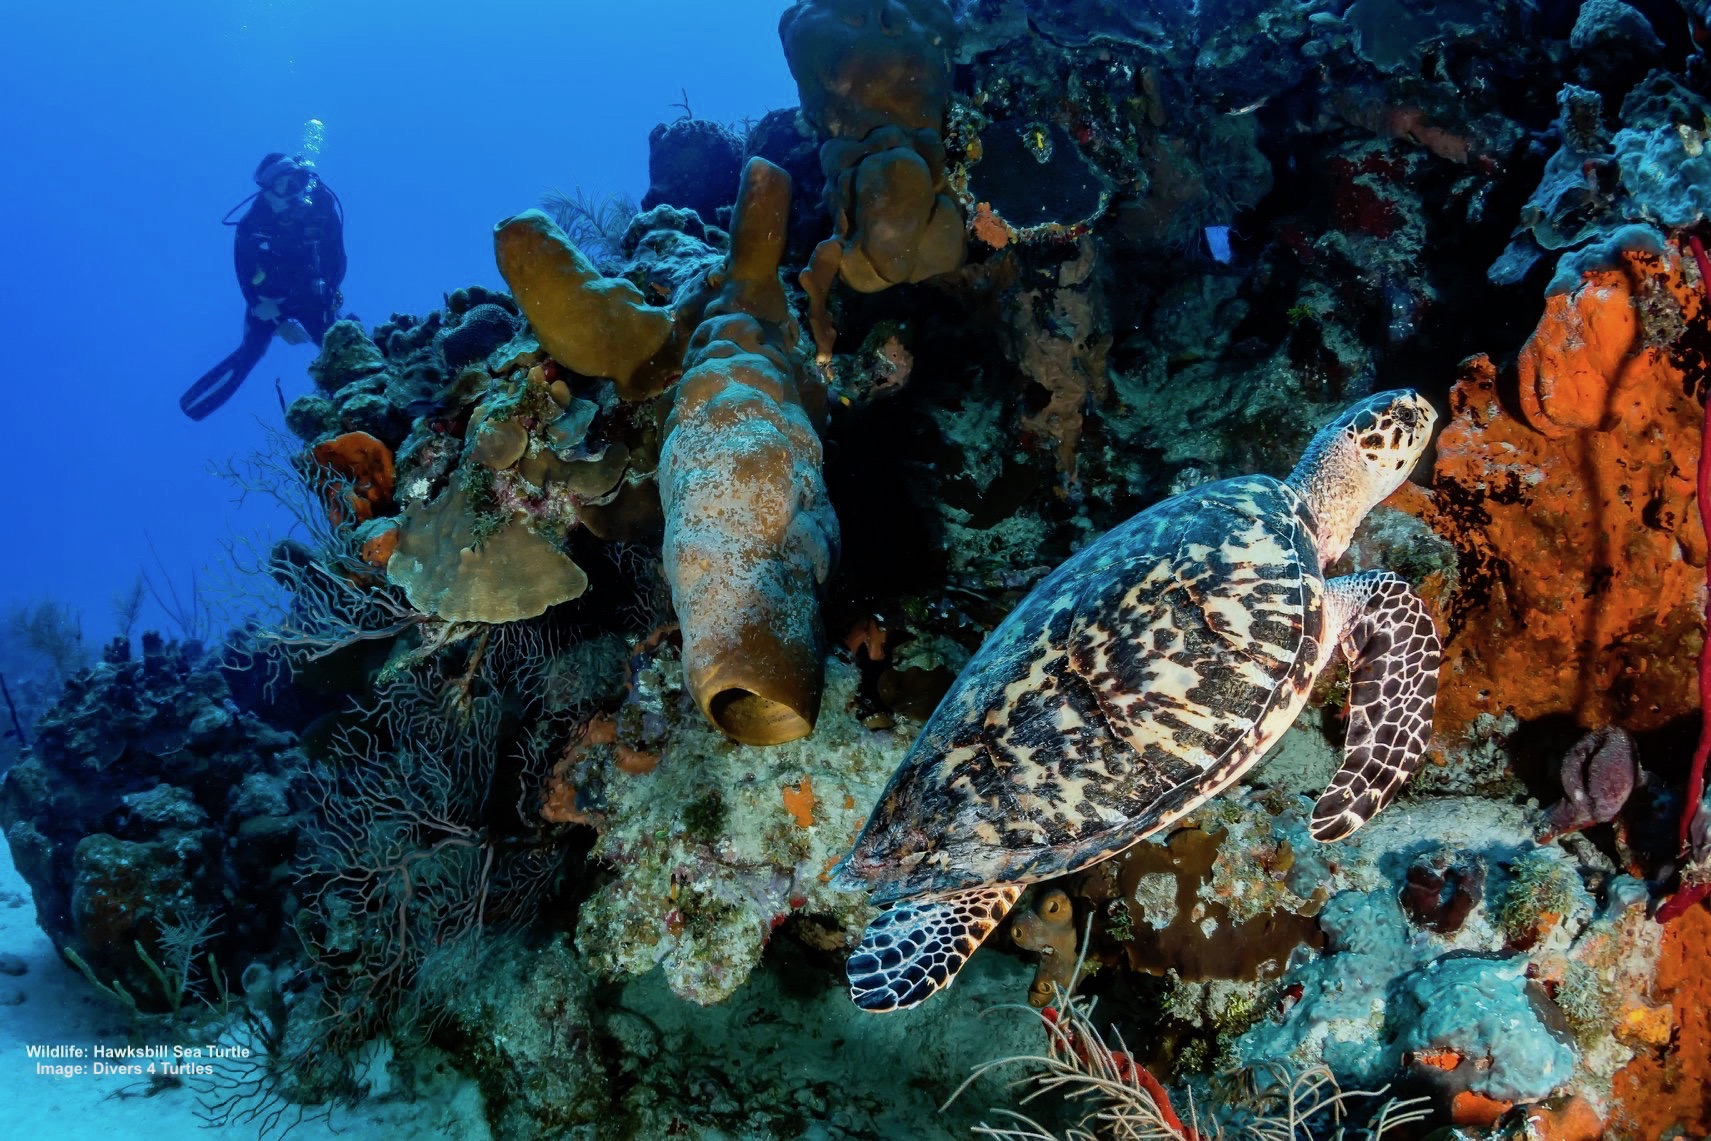 SEA TURTLES FACE MANY OBSTACLES, THE HAWKSBILL IS ESPECIALLY THREATENED BECAUSE OF ITS BEAUTIFUL SHELL USED FOR JEWELRY FOR THE TOURIST TRADE. IMAGE: ©WHITCOMBERD I DREAMSTIME.COM